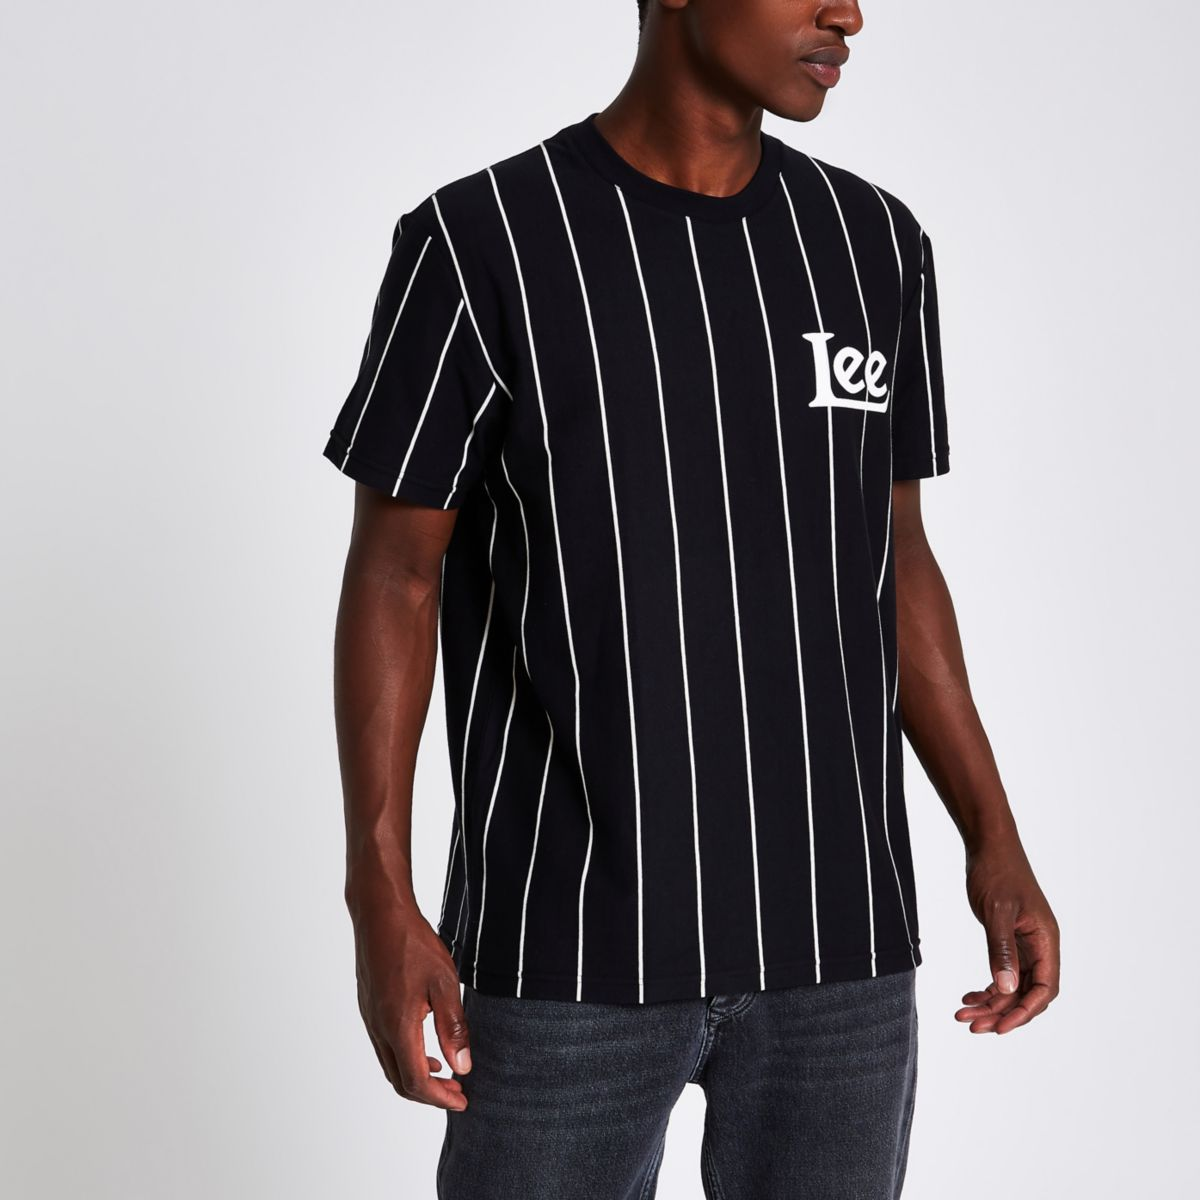 Lee black stripe crew neck T-shirt